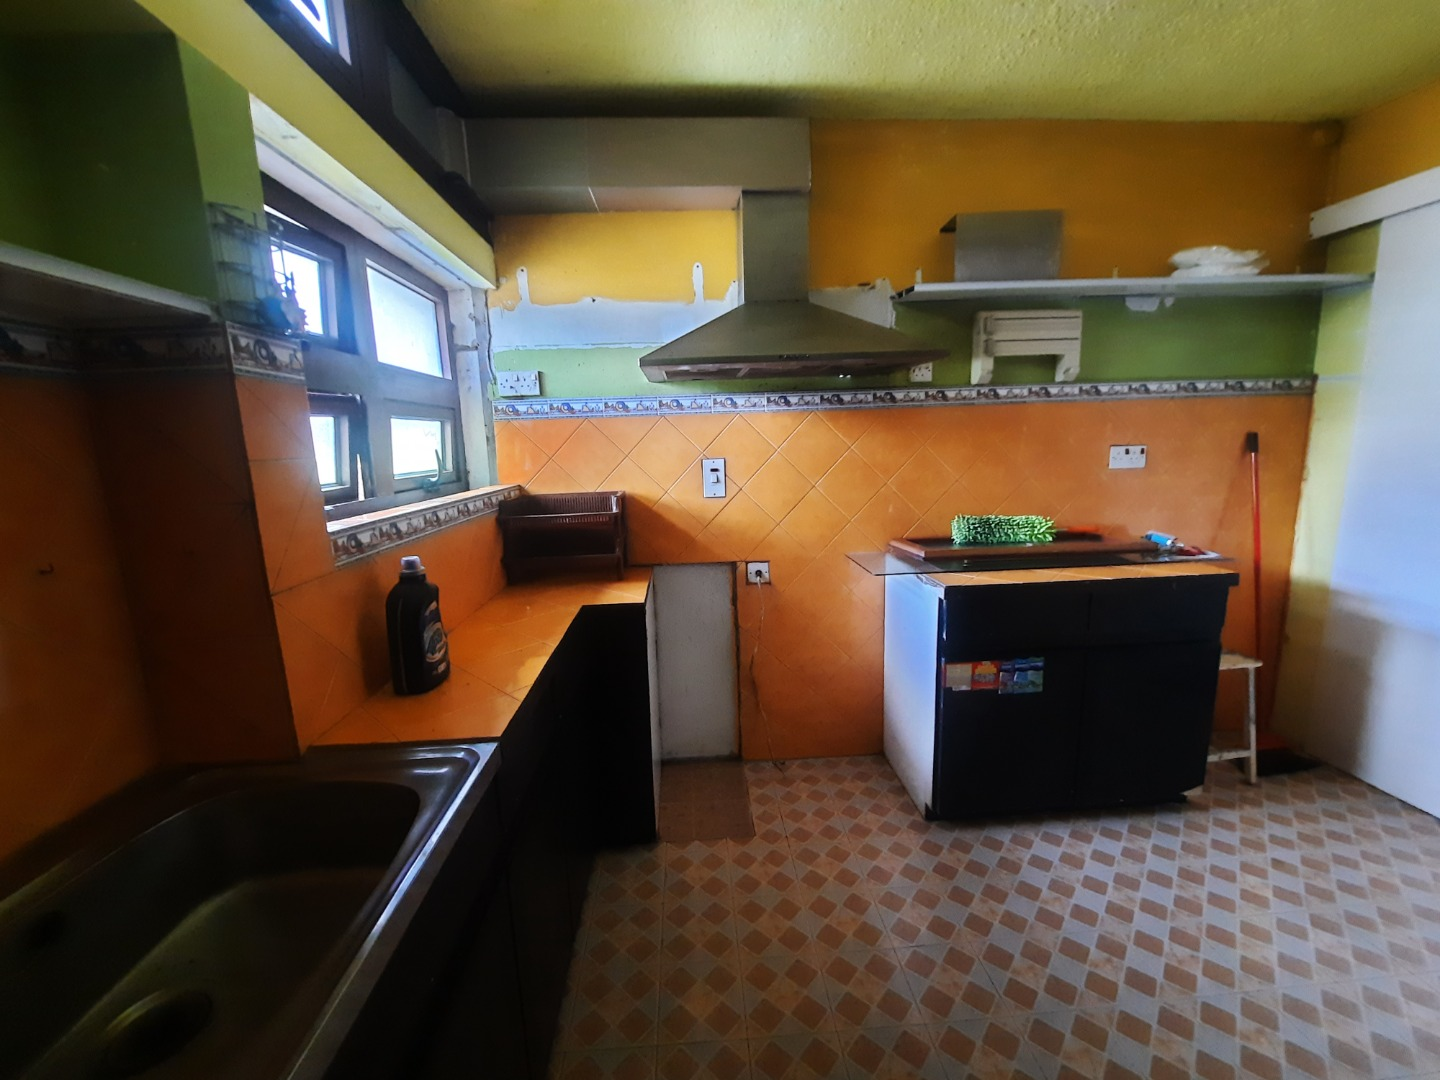 3 Bedroom Apartment / Flat For Sale in Curepipe